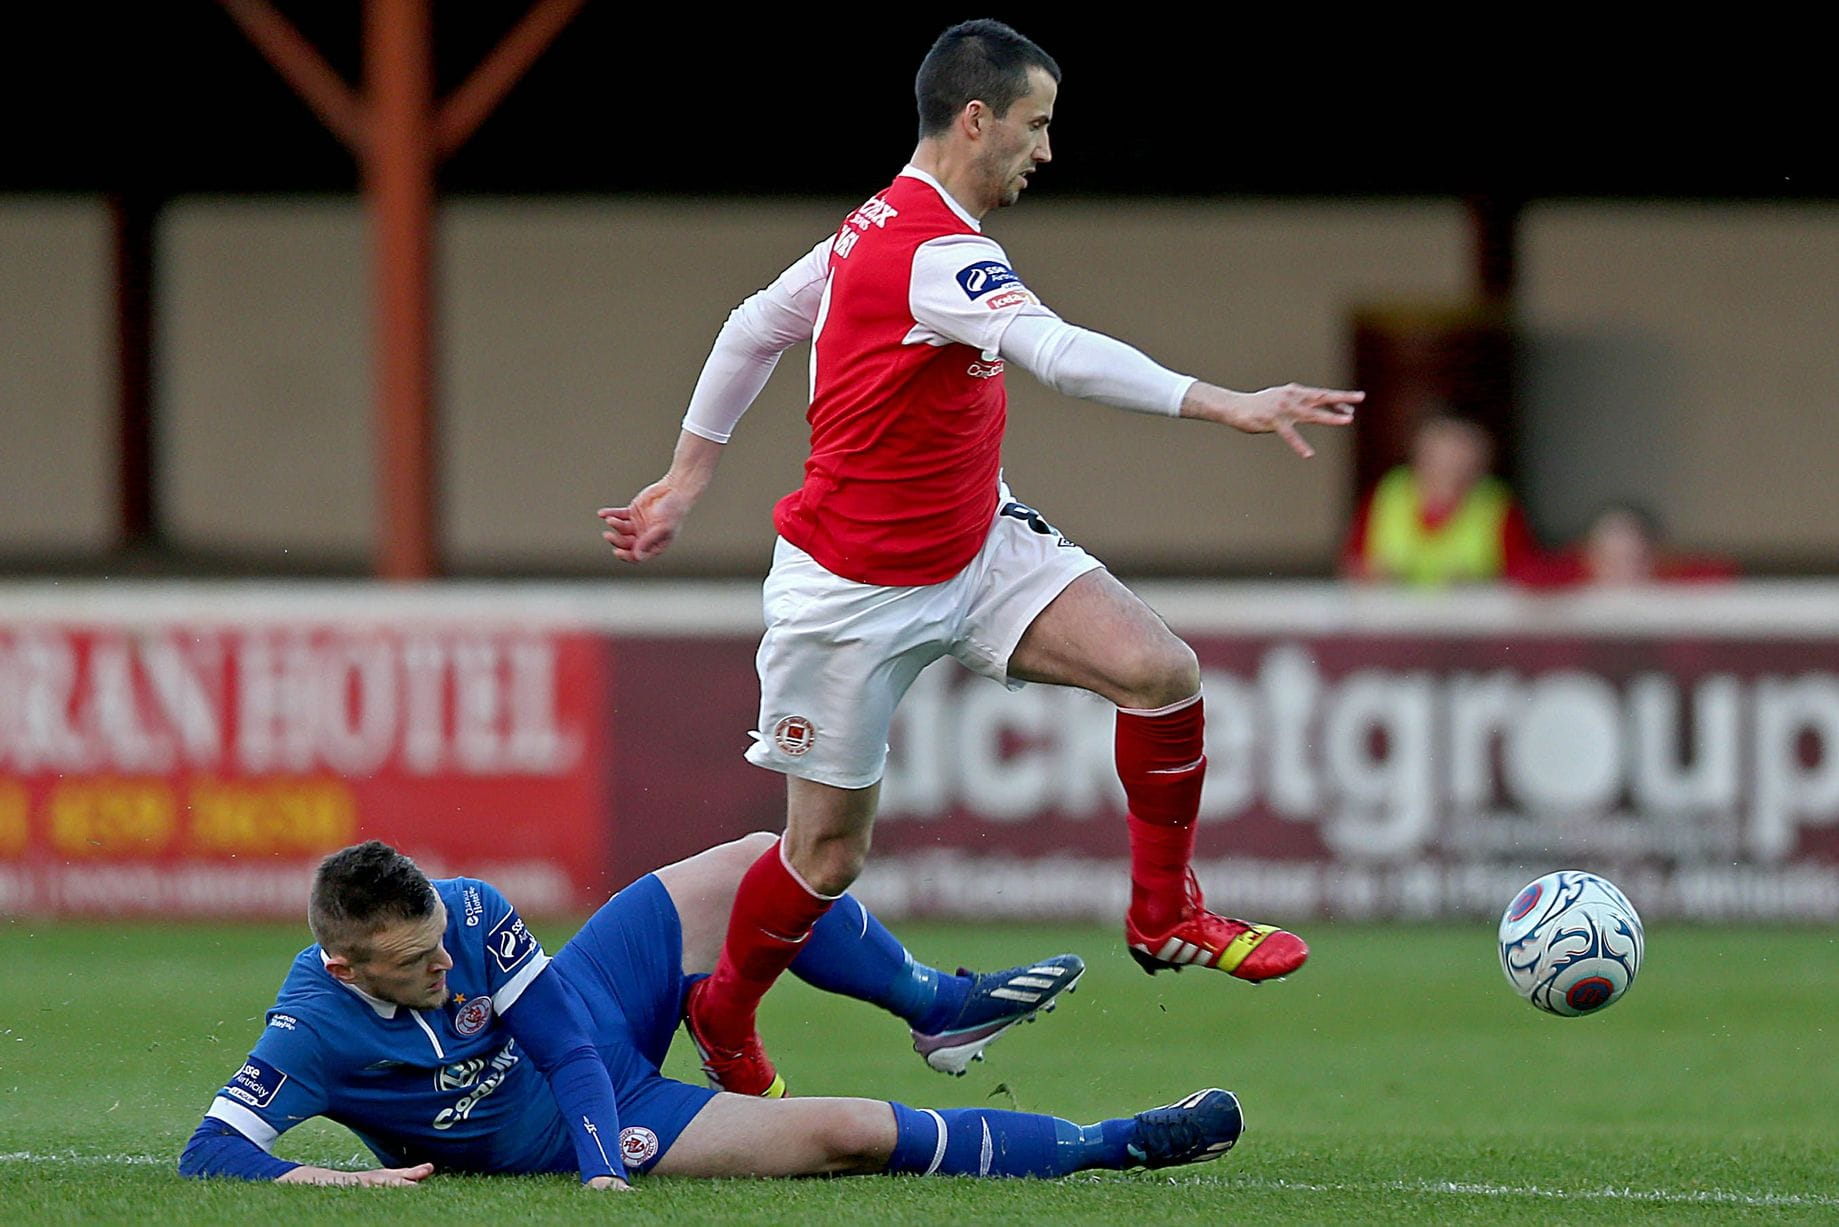 St. Patricks Athletic VS Sligo Rovers Soccer Prediction